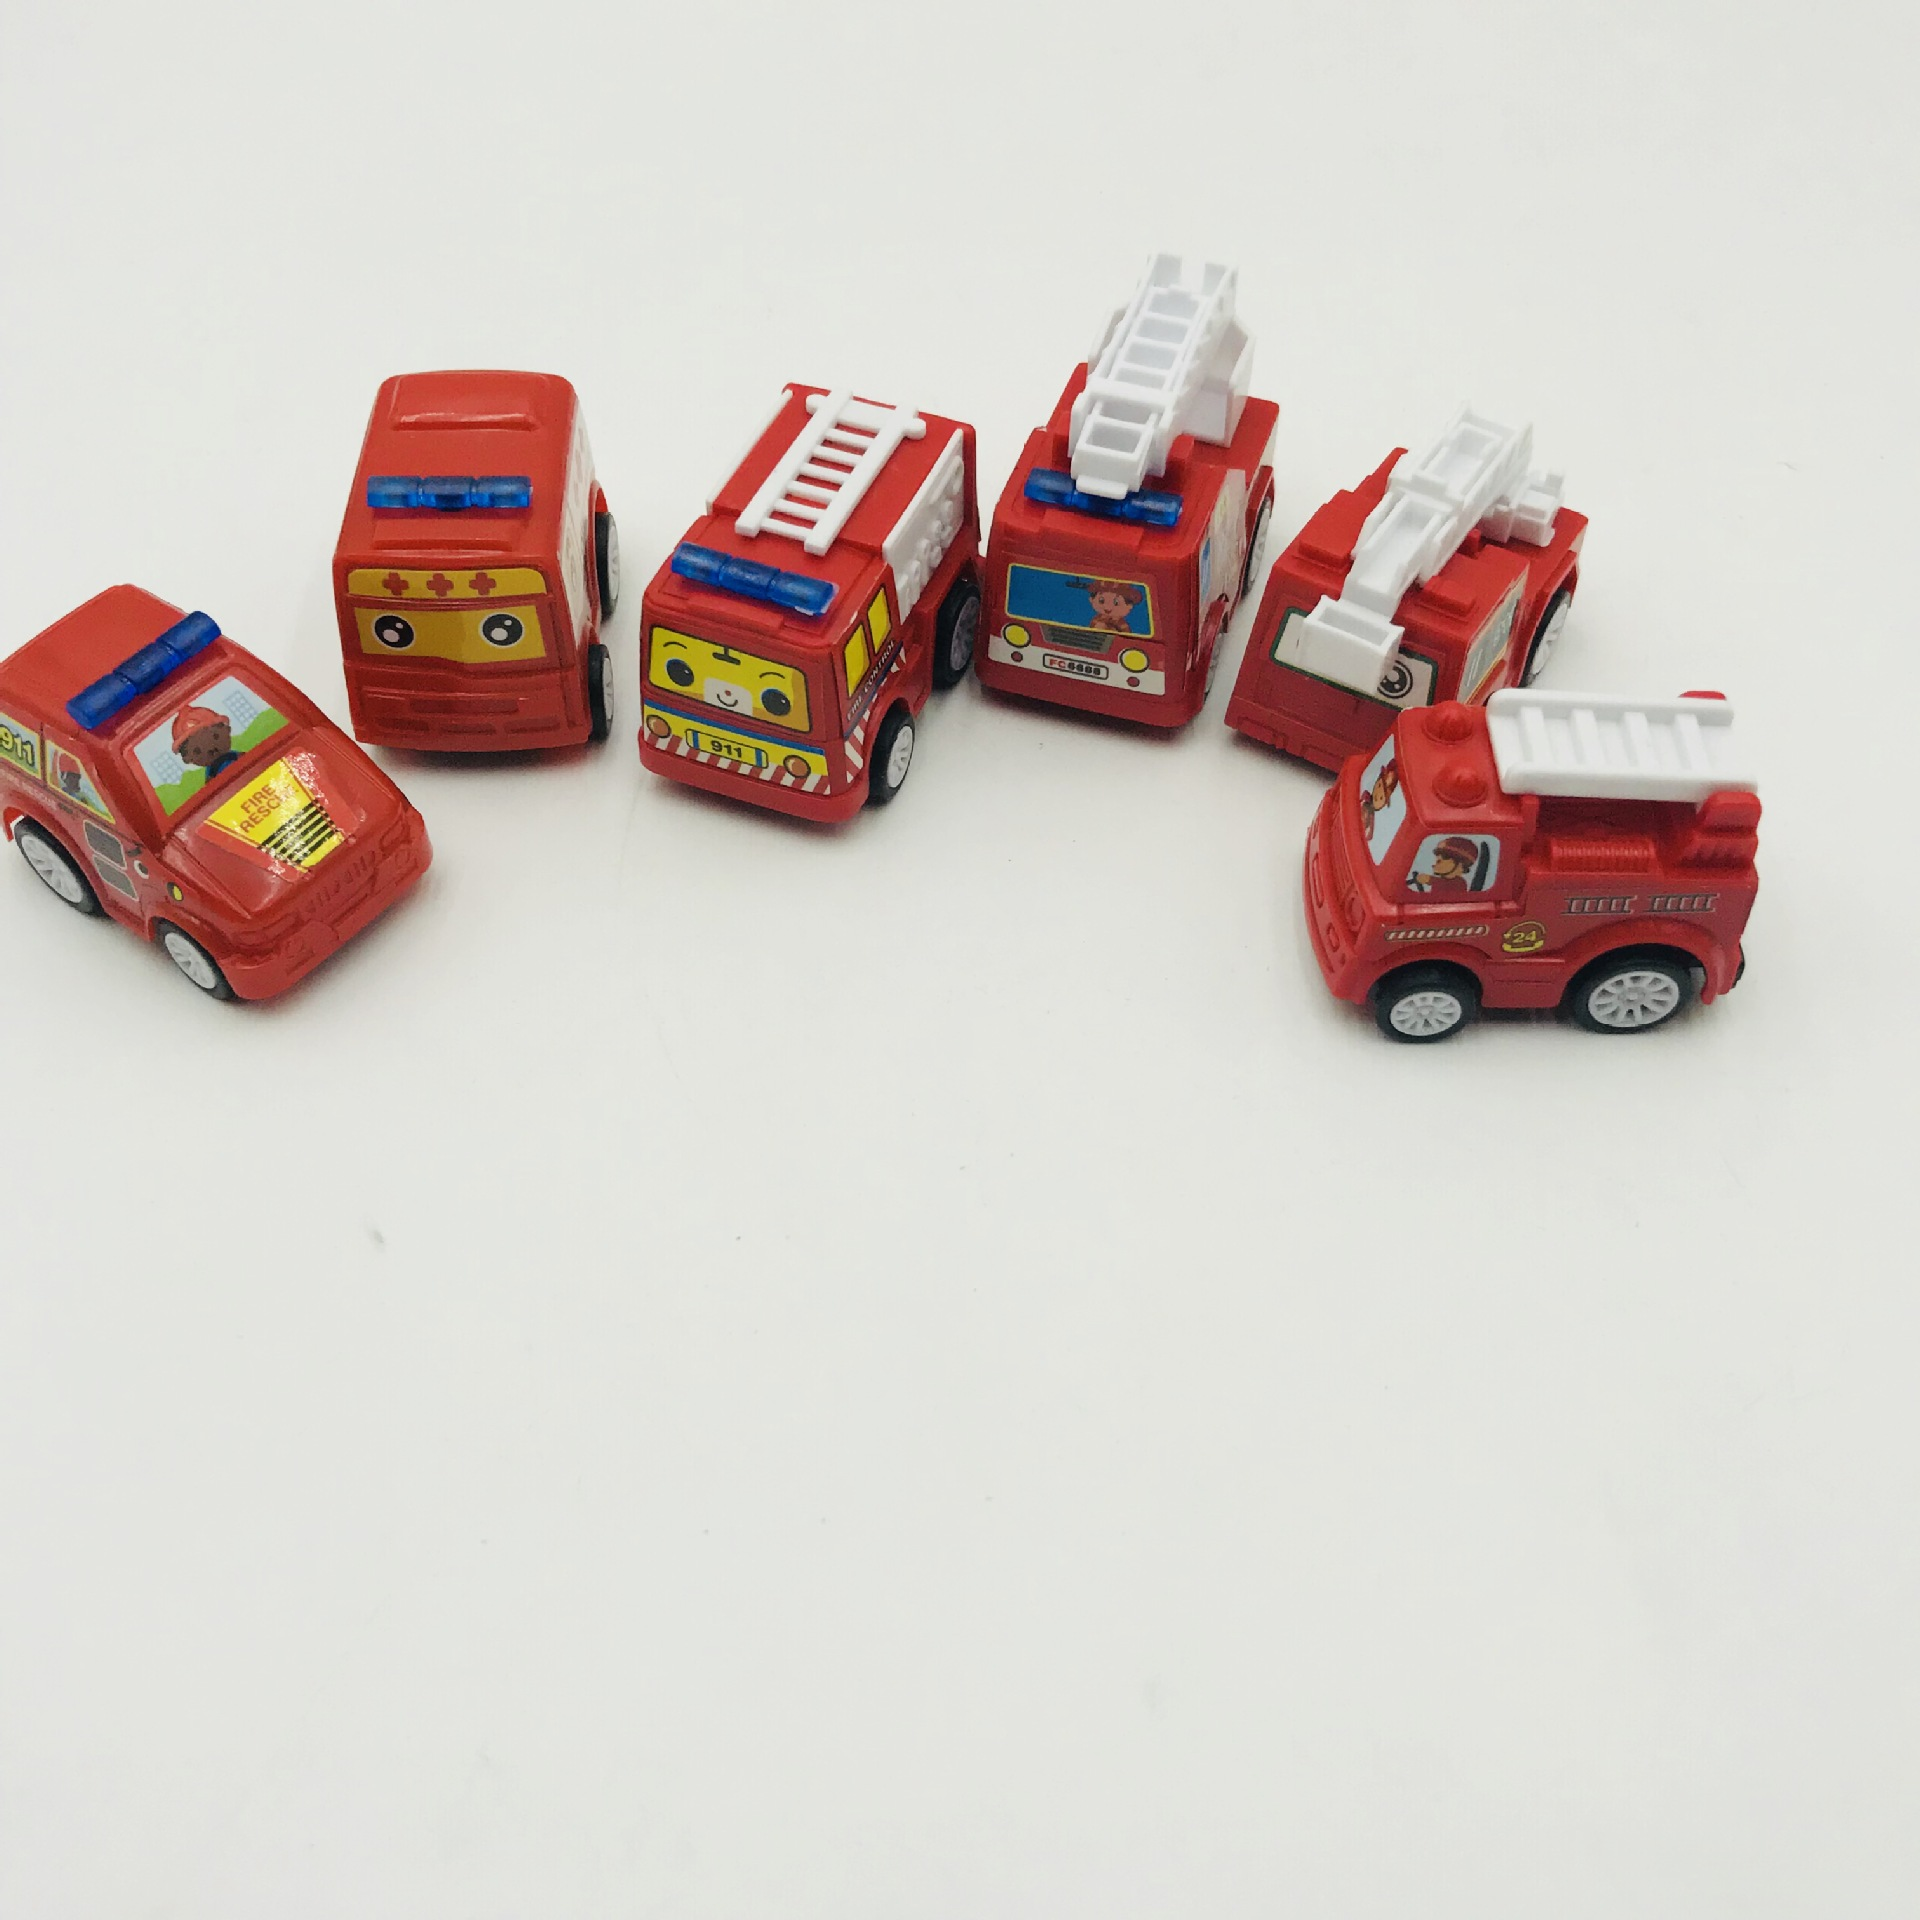 6pcs Pull Back Car Toys Mobile Machinery Shop Construction Vehicle Fire Truck Taxi Model Baby Mini Cars Gift Children Toys 2019 6